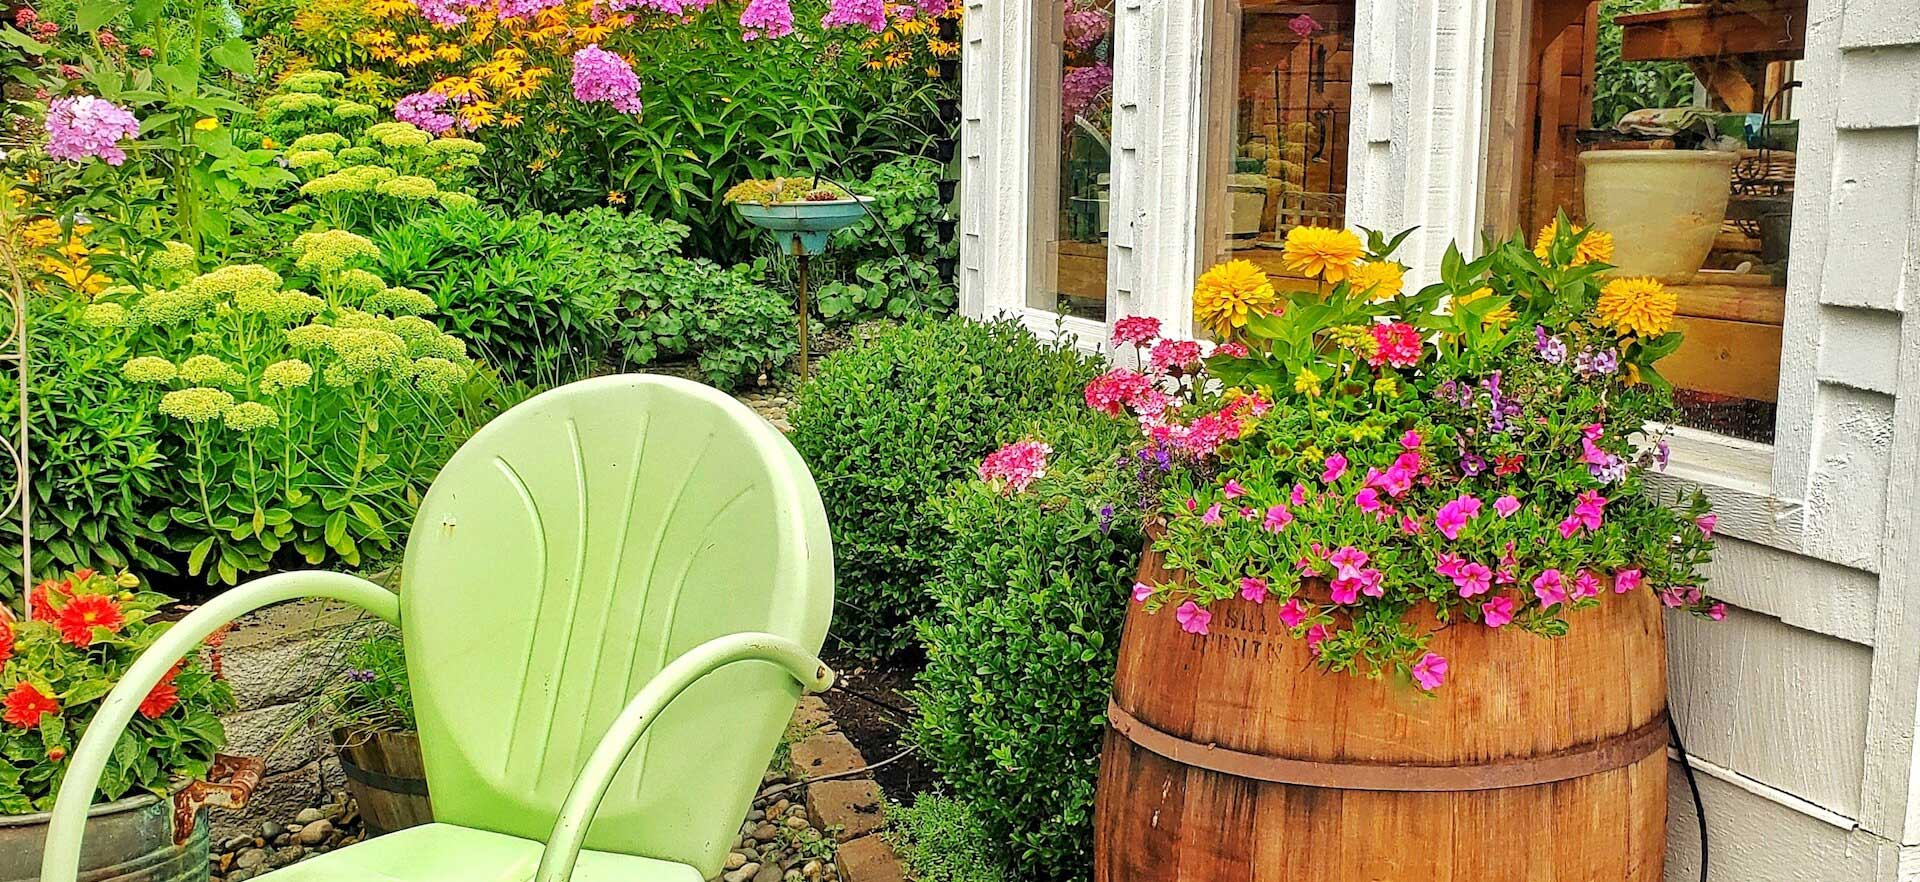 Wooden barrel flower container in front of greenhouse and lush flower garden along with a green metal chair.